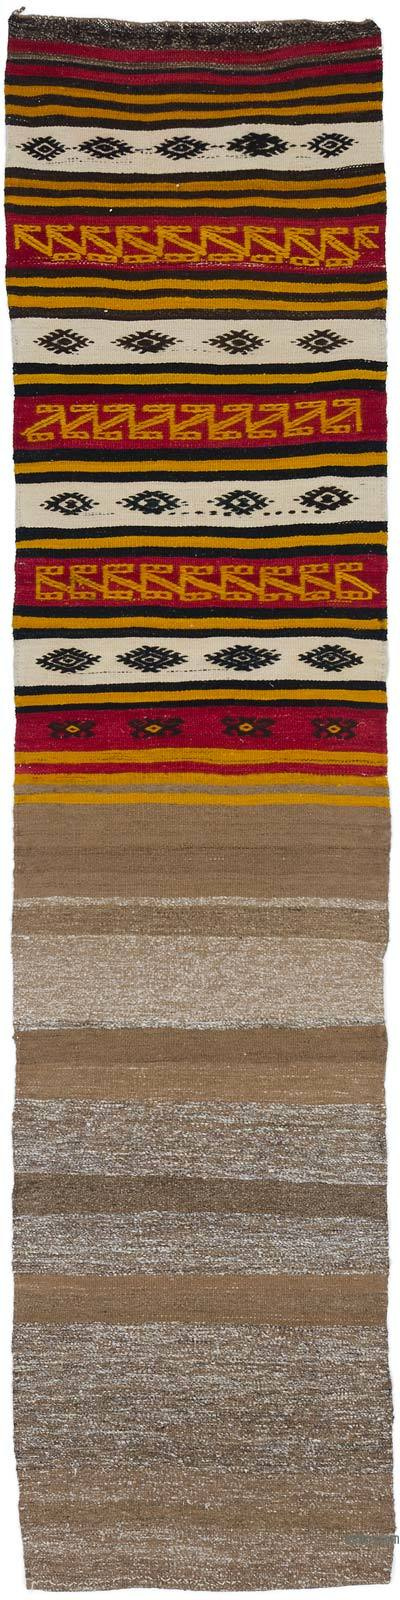 "Vintage Turkish Kilim Runner - 1' 11"" x 8' 1"" (23 in. x 97 in.)"